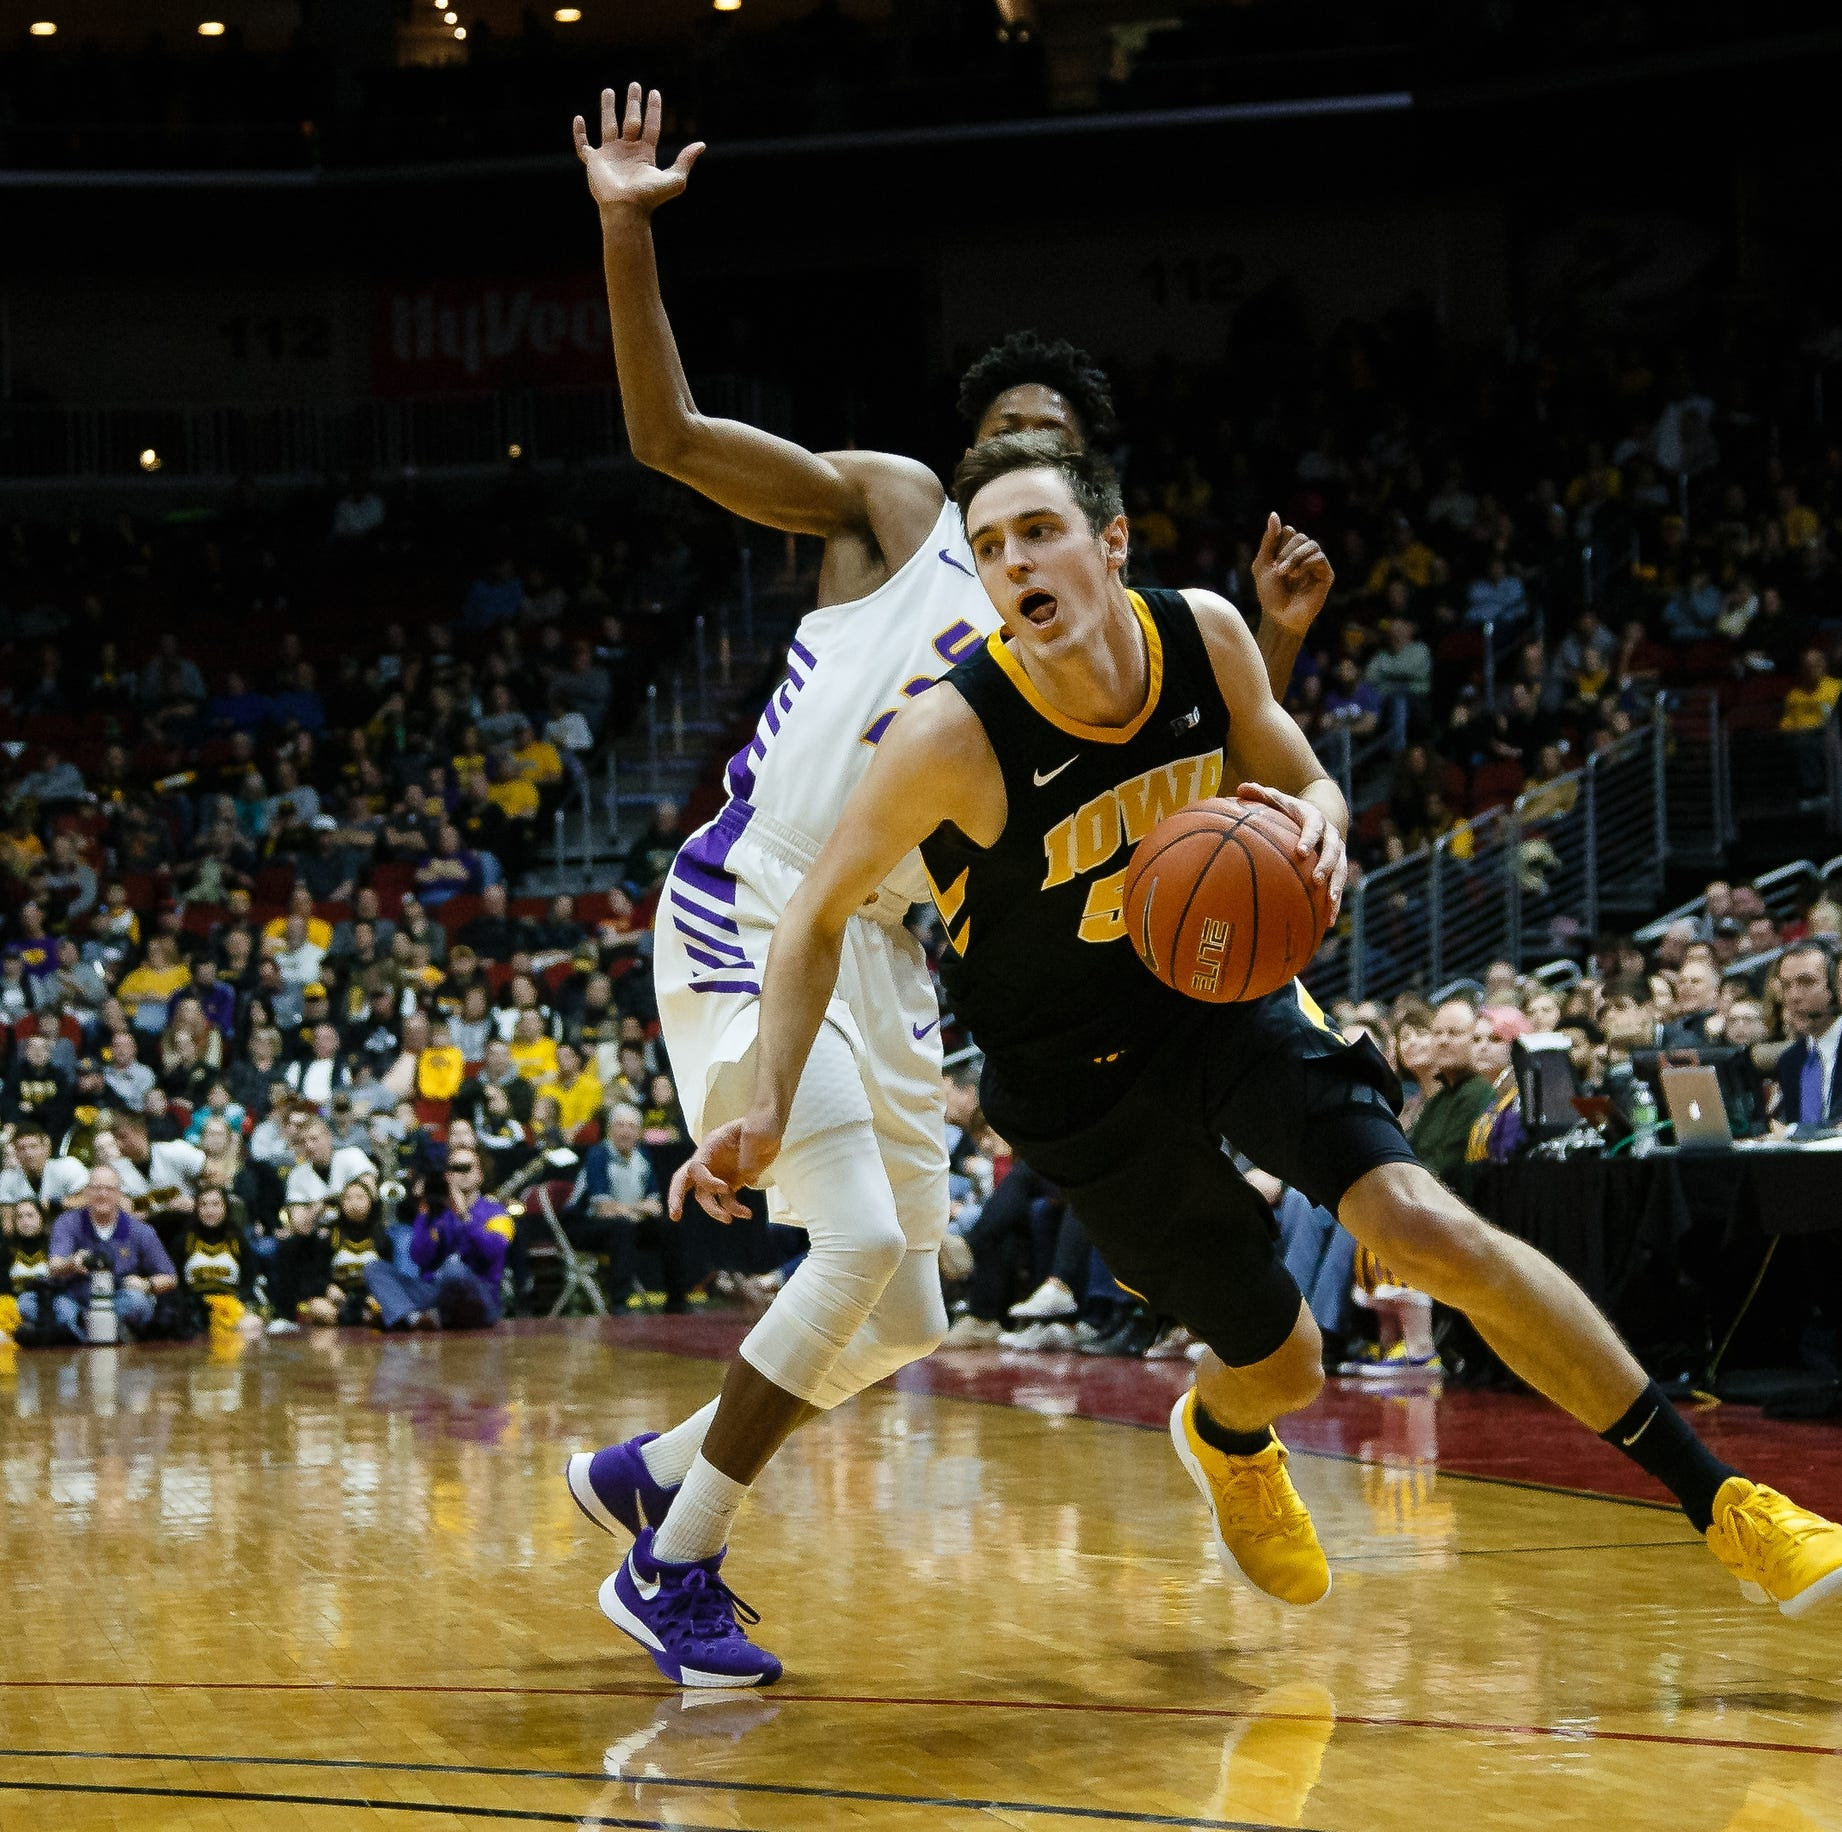 Leistikow: Making defense fun again, Hawkeyes toy with UNI in Hy-Vee Classic finale